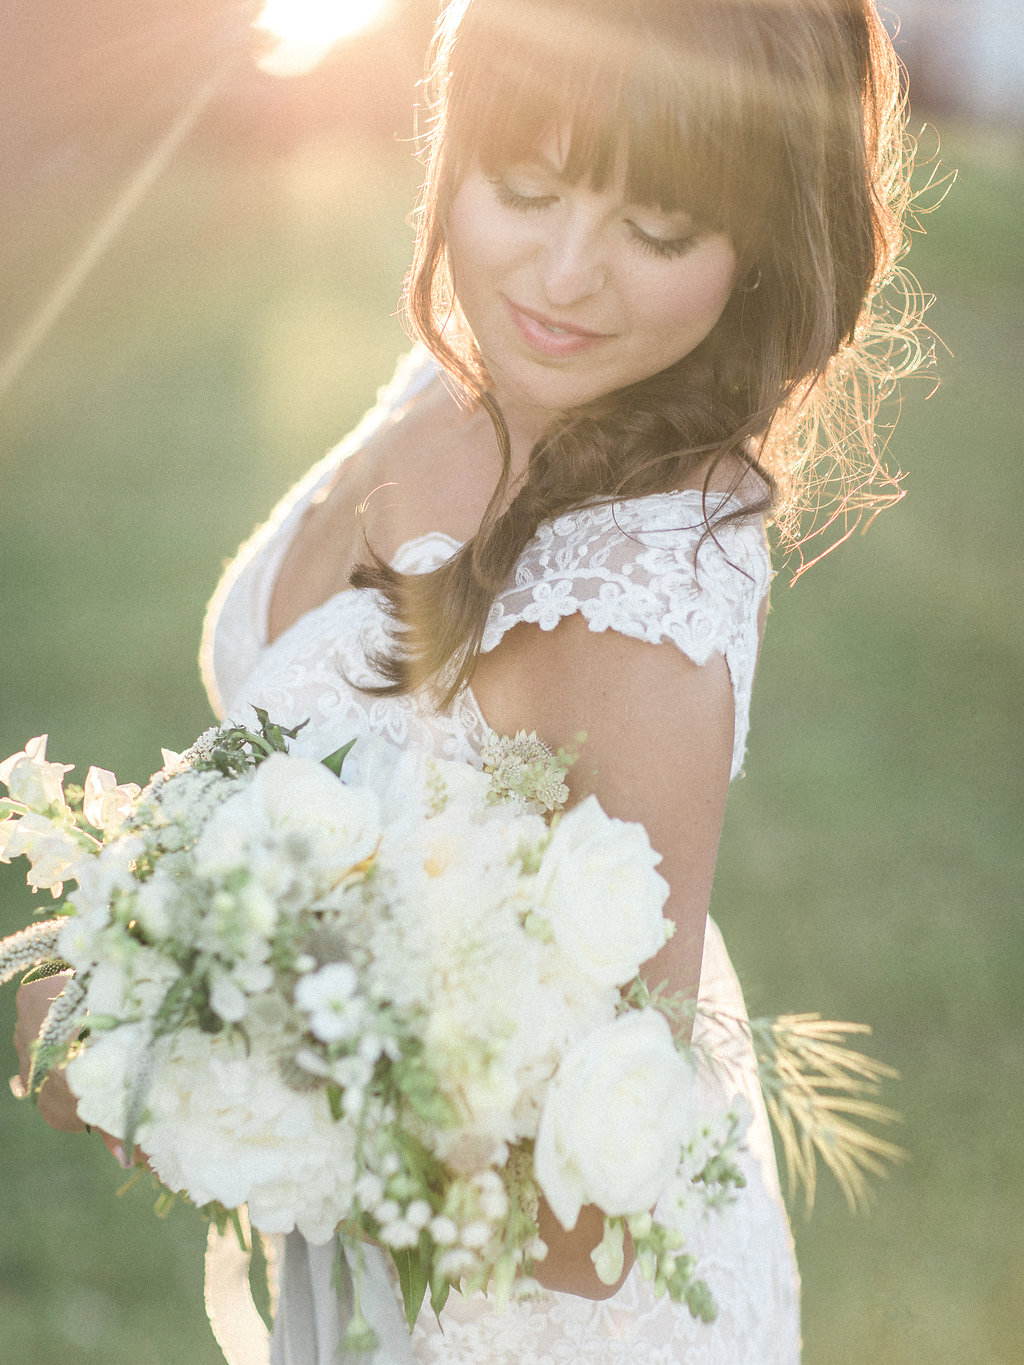 Sugarberry Blooms floral design for Water Styled Shoot at Blue Bell Farm in Fayette MO